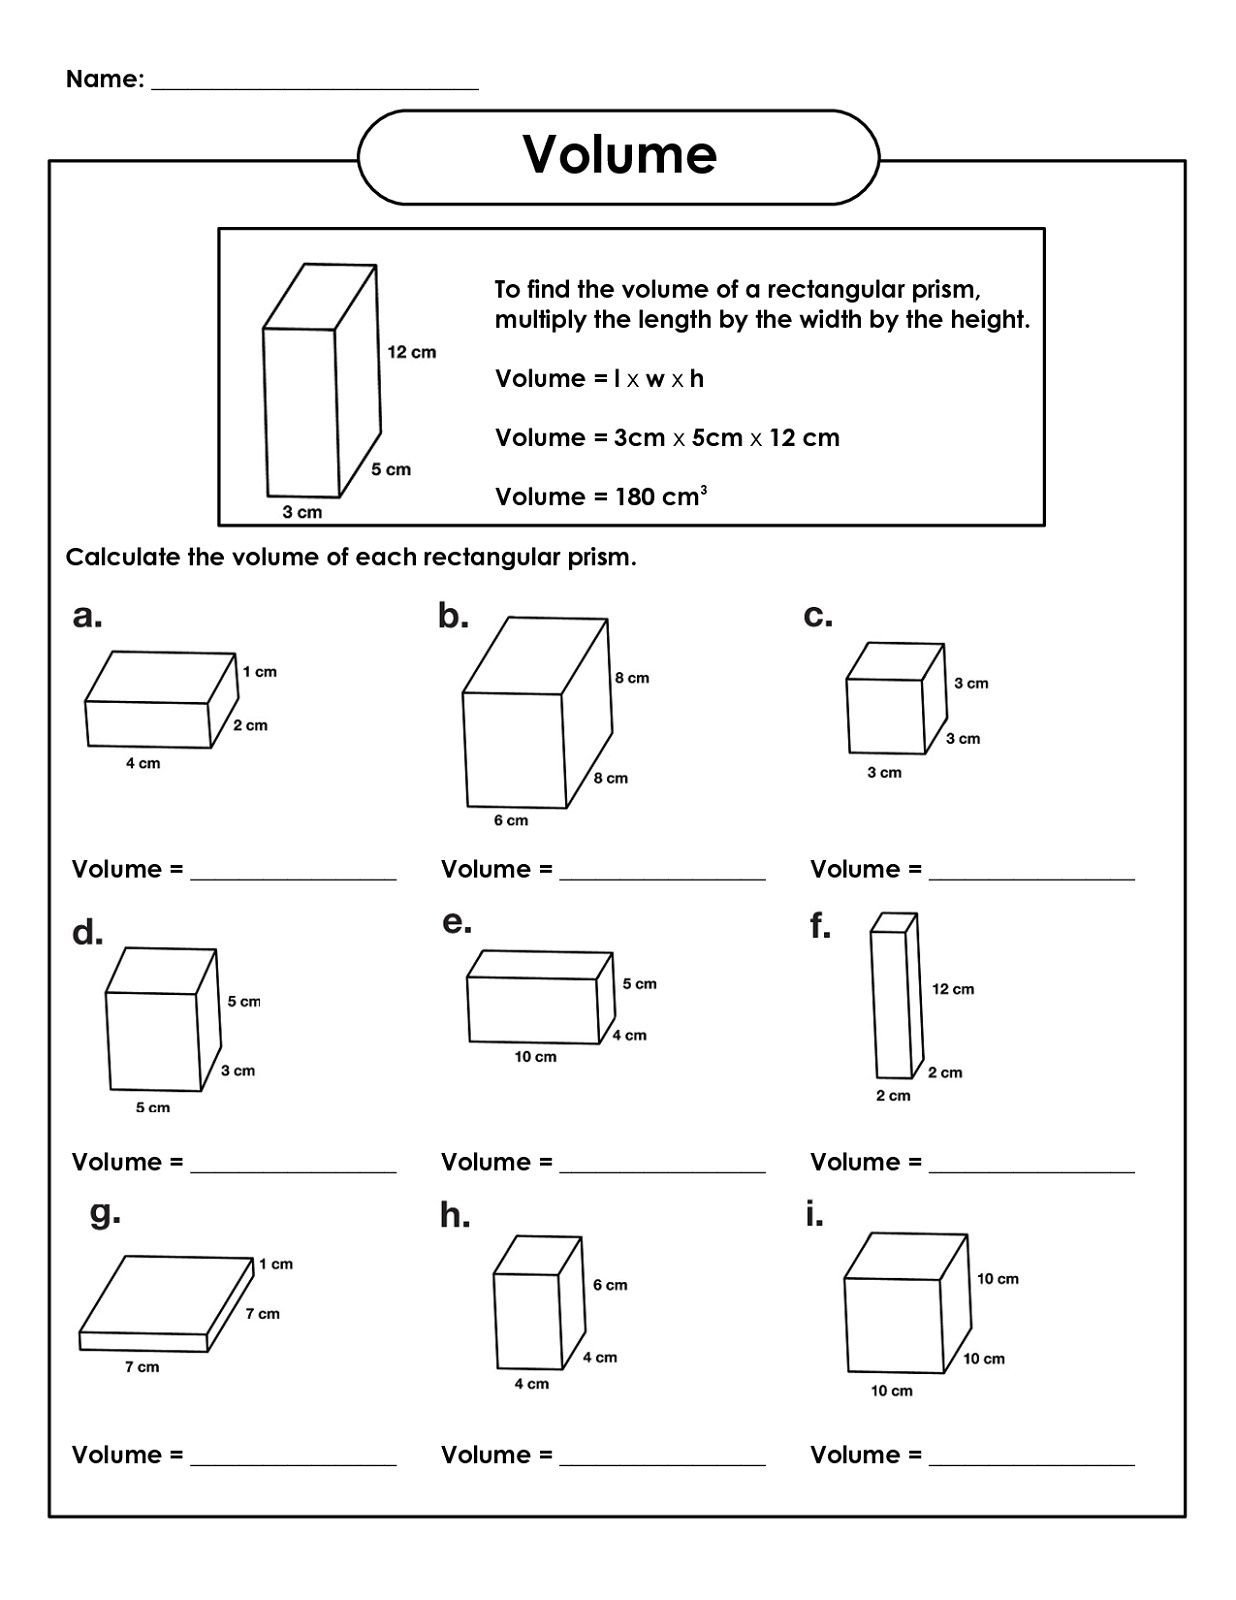 Volume Worksheet 4th Grade Rectangular Prism Volume 5th Grade Math Worksheets